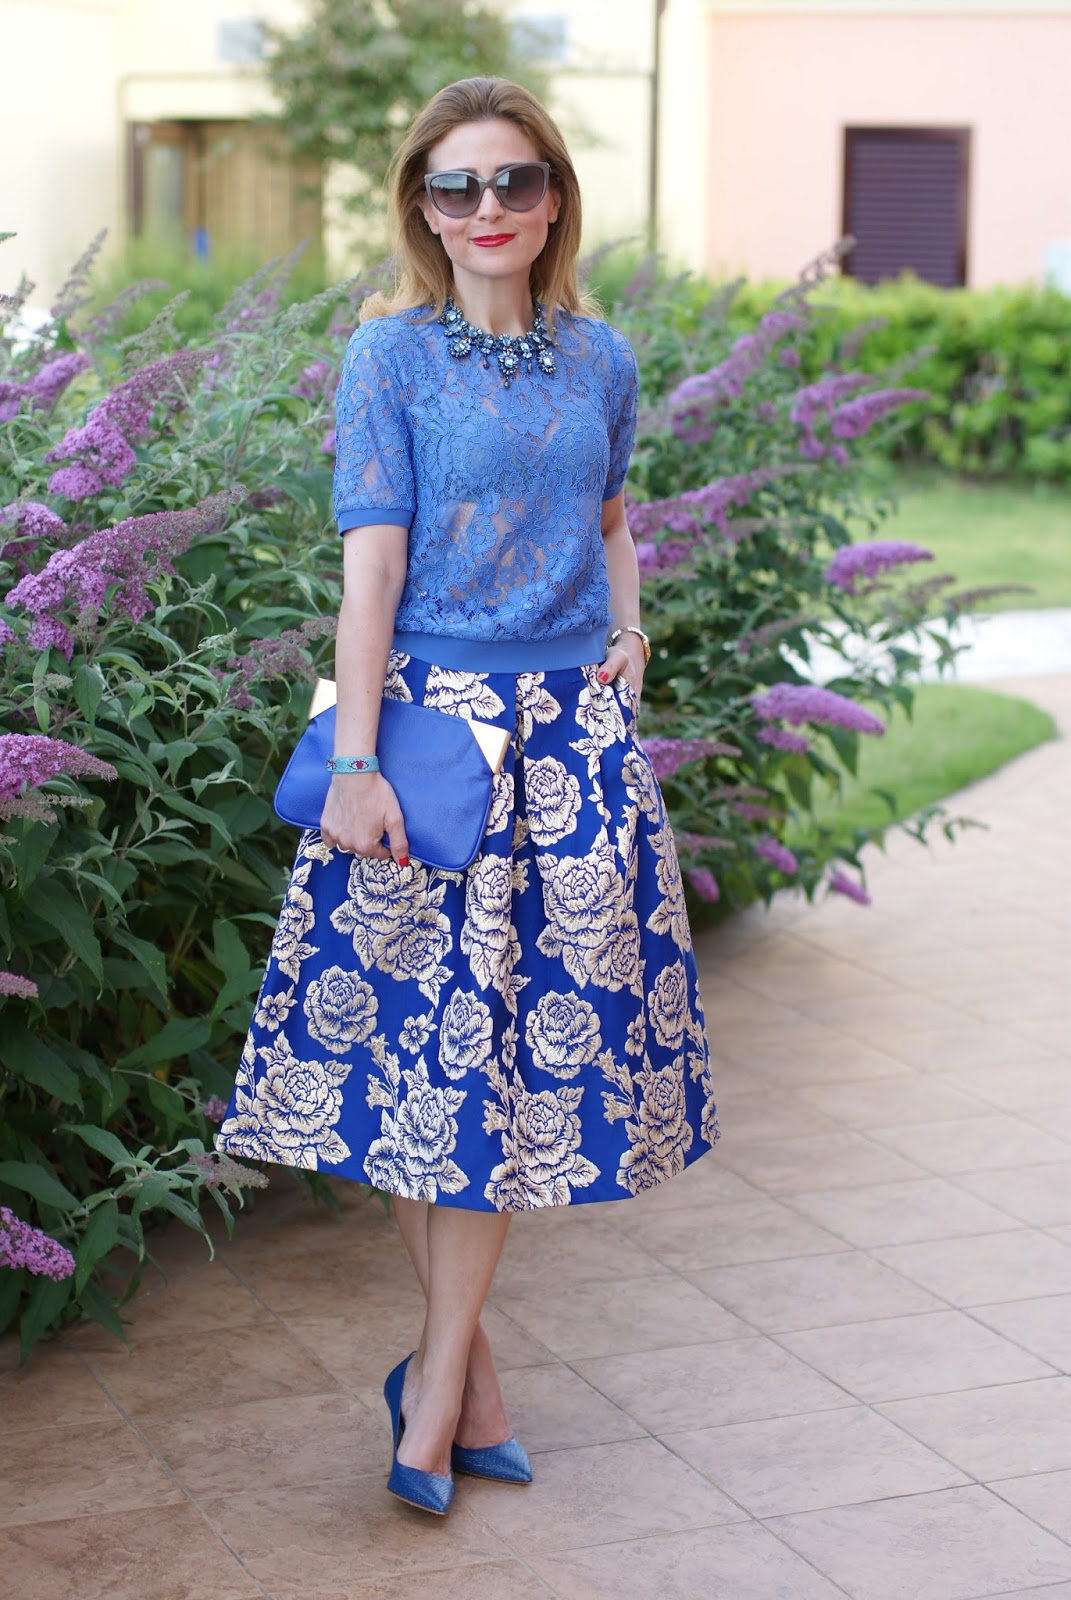 Fab 40s style, Jacquard midi skirt and see through lace t-shirt on Fashion and Cookies fashion blog, fashion blogger style